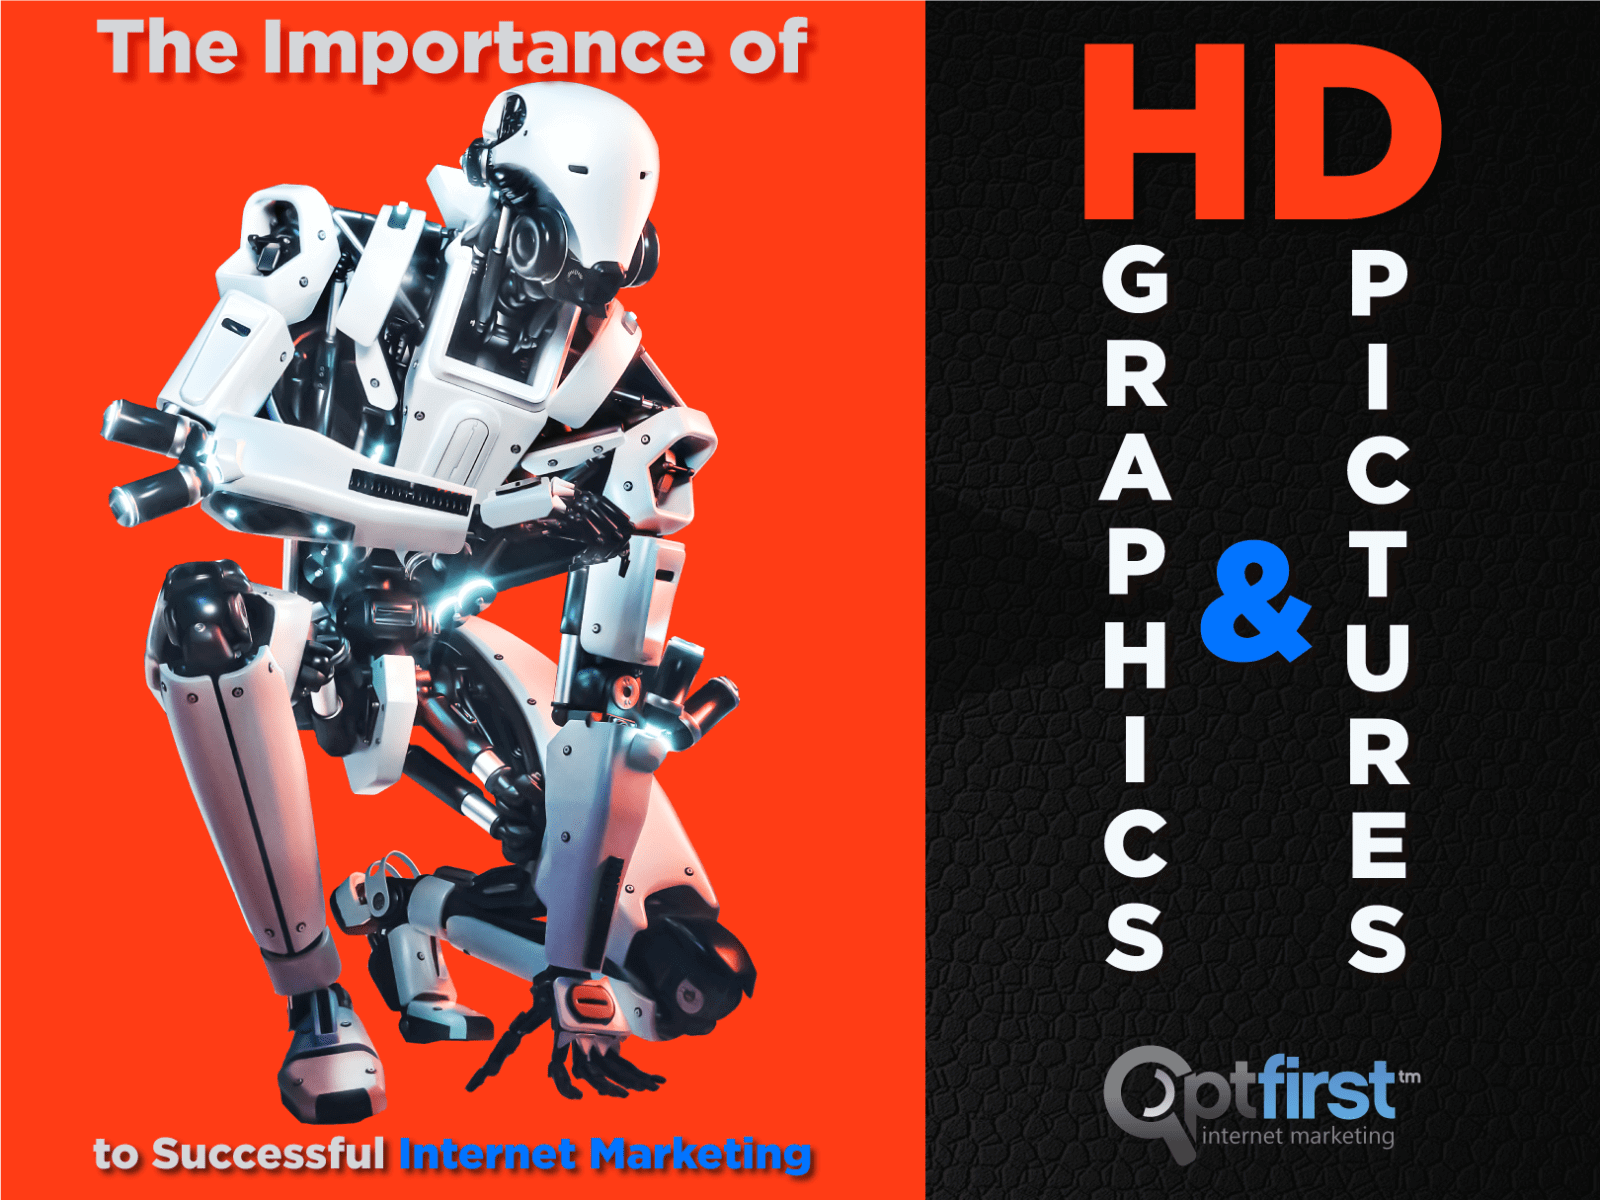 The Importance of Hi-Def Graphics and Pictures to Successful Internet Marketing